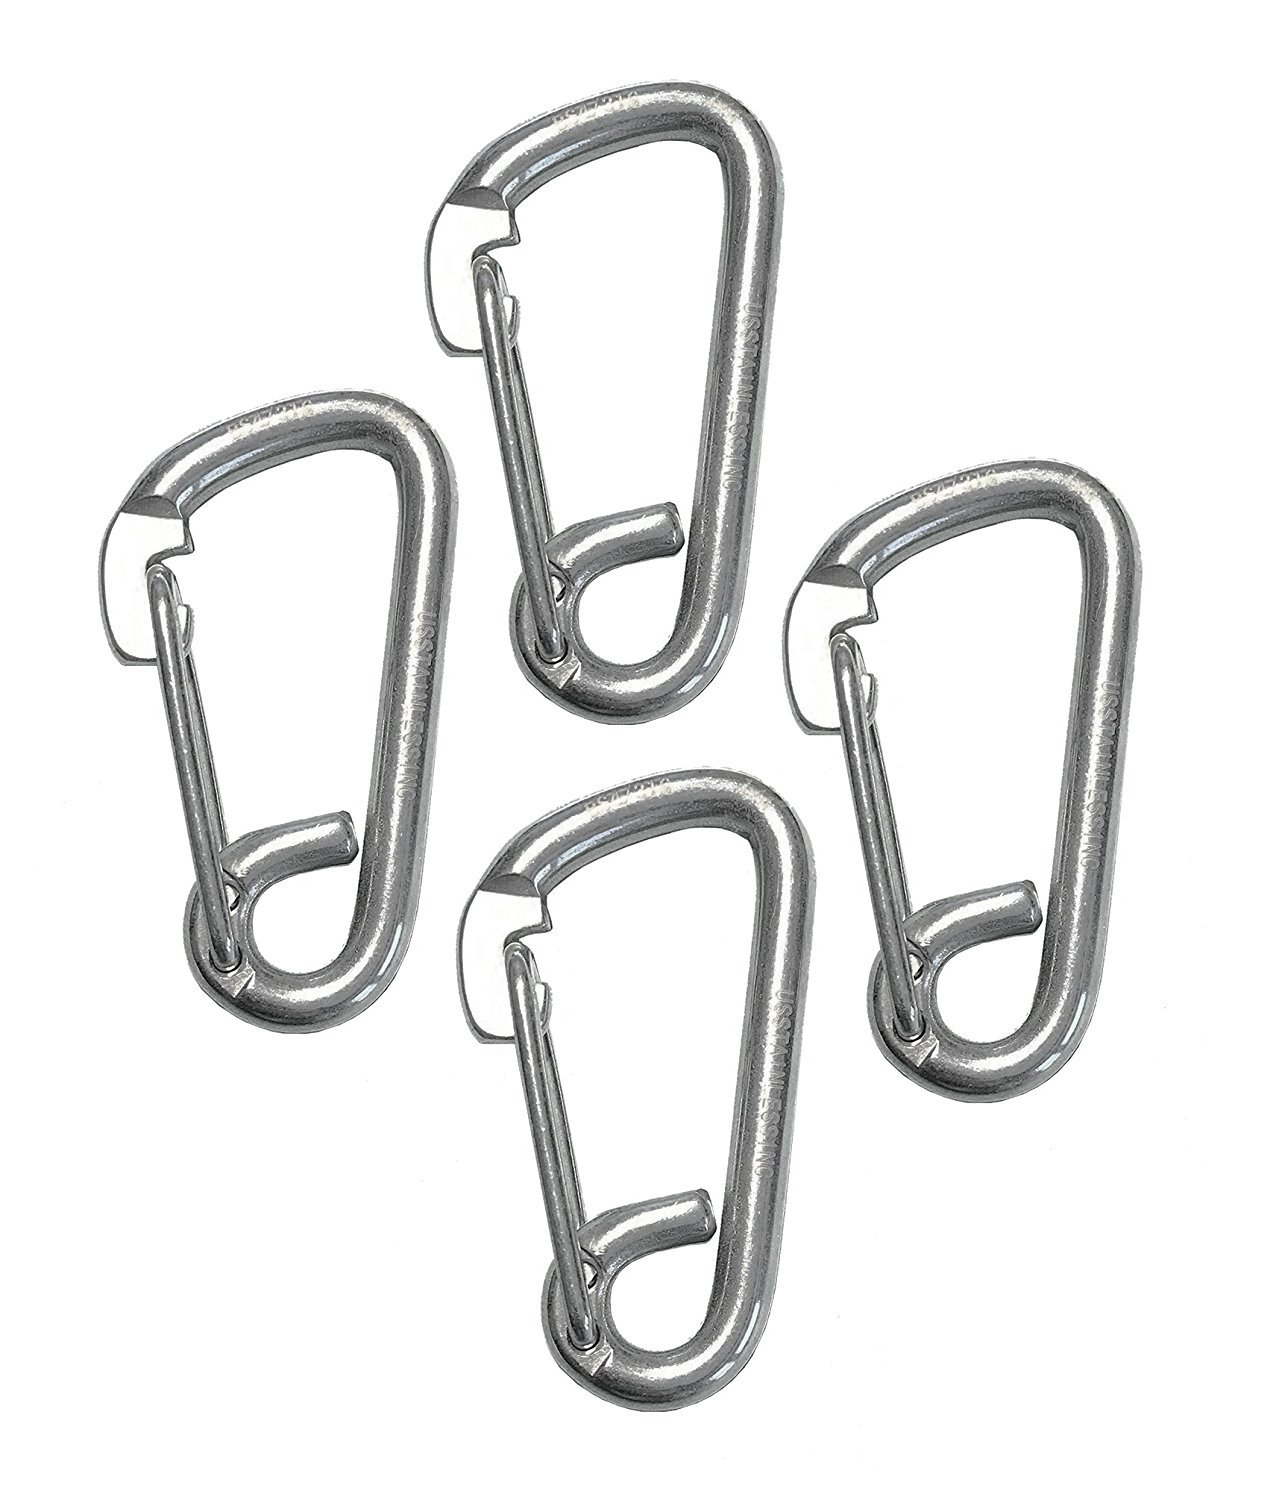 4 Pieces Stainless Steel 316 Spring Hook Carabiner 1/4'' (6mm) Marine Grade Safety Clip